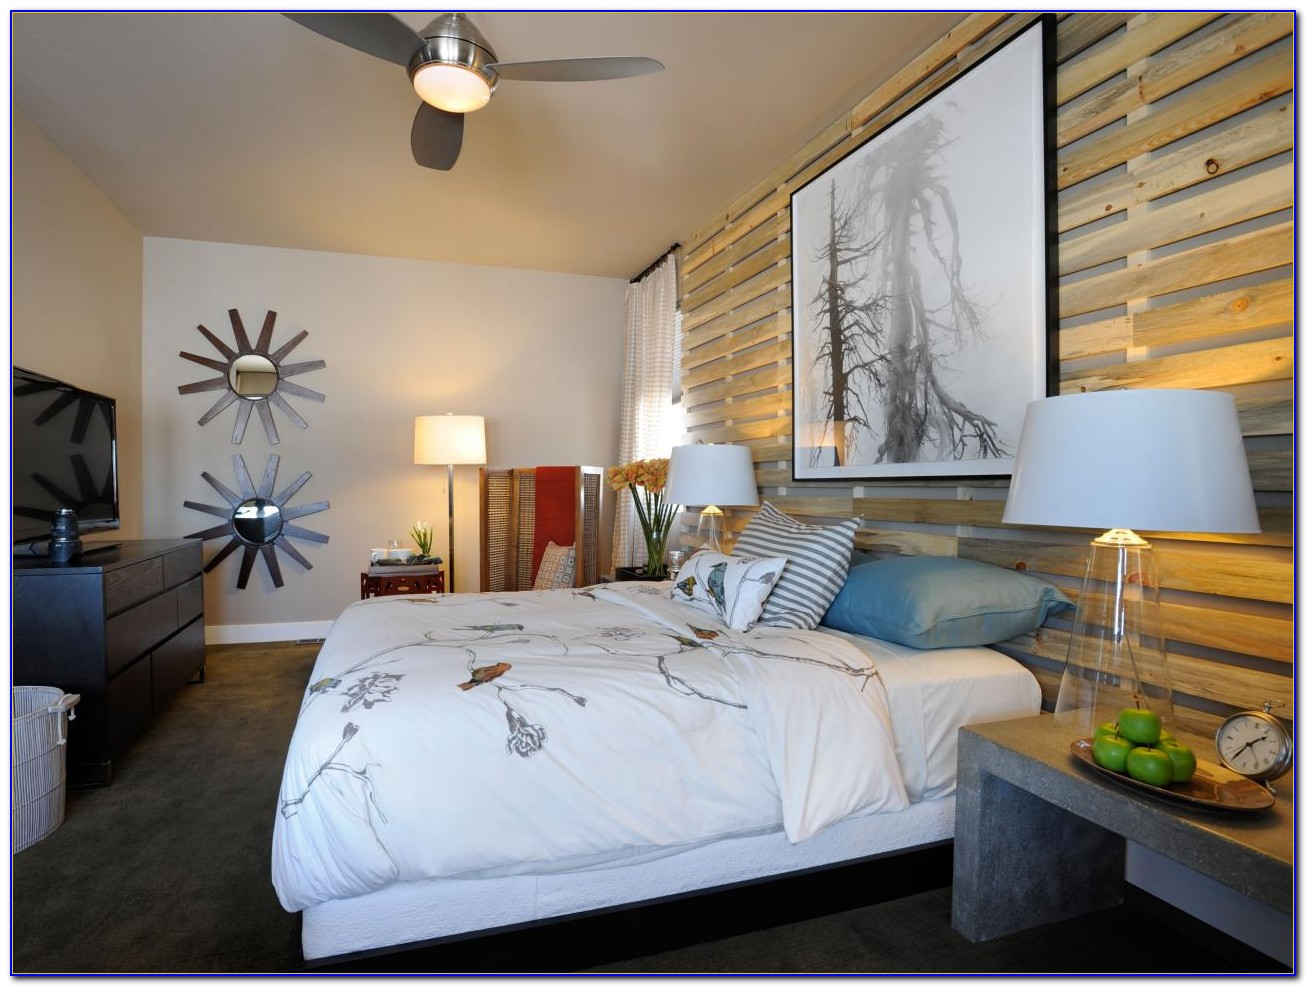 Quiet Ceiling Fans For Bedroom